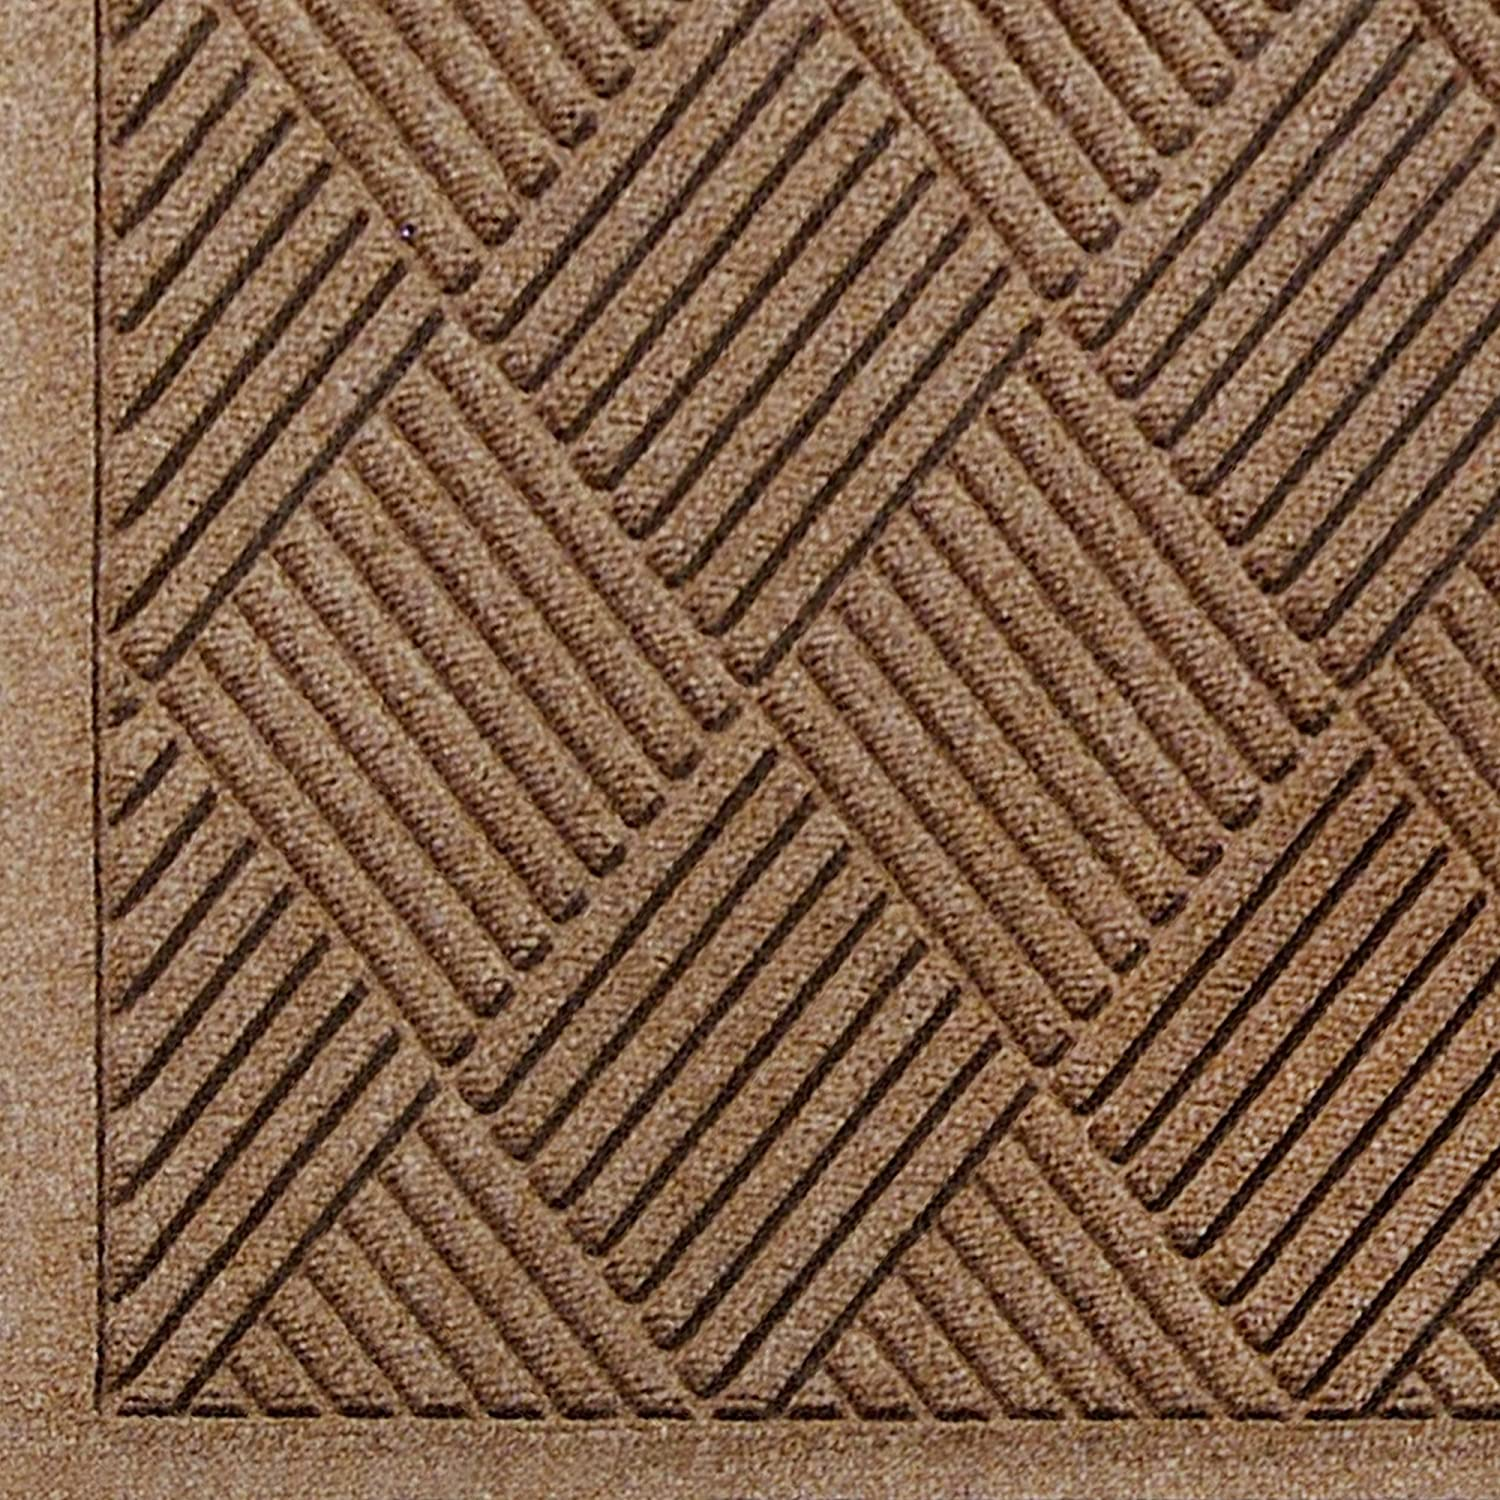 WaterHog Fashion Diamond-Pattern Commercial Grade Entrance Mat, Indoor/Outdoor Medium Brown Floor Mat 5' Length x 3' Width, Medium Brown by M+A Matting